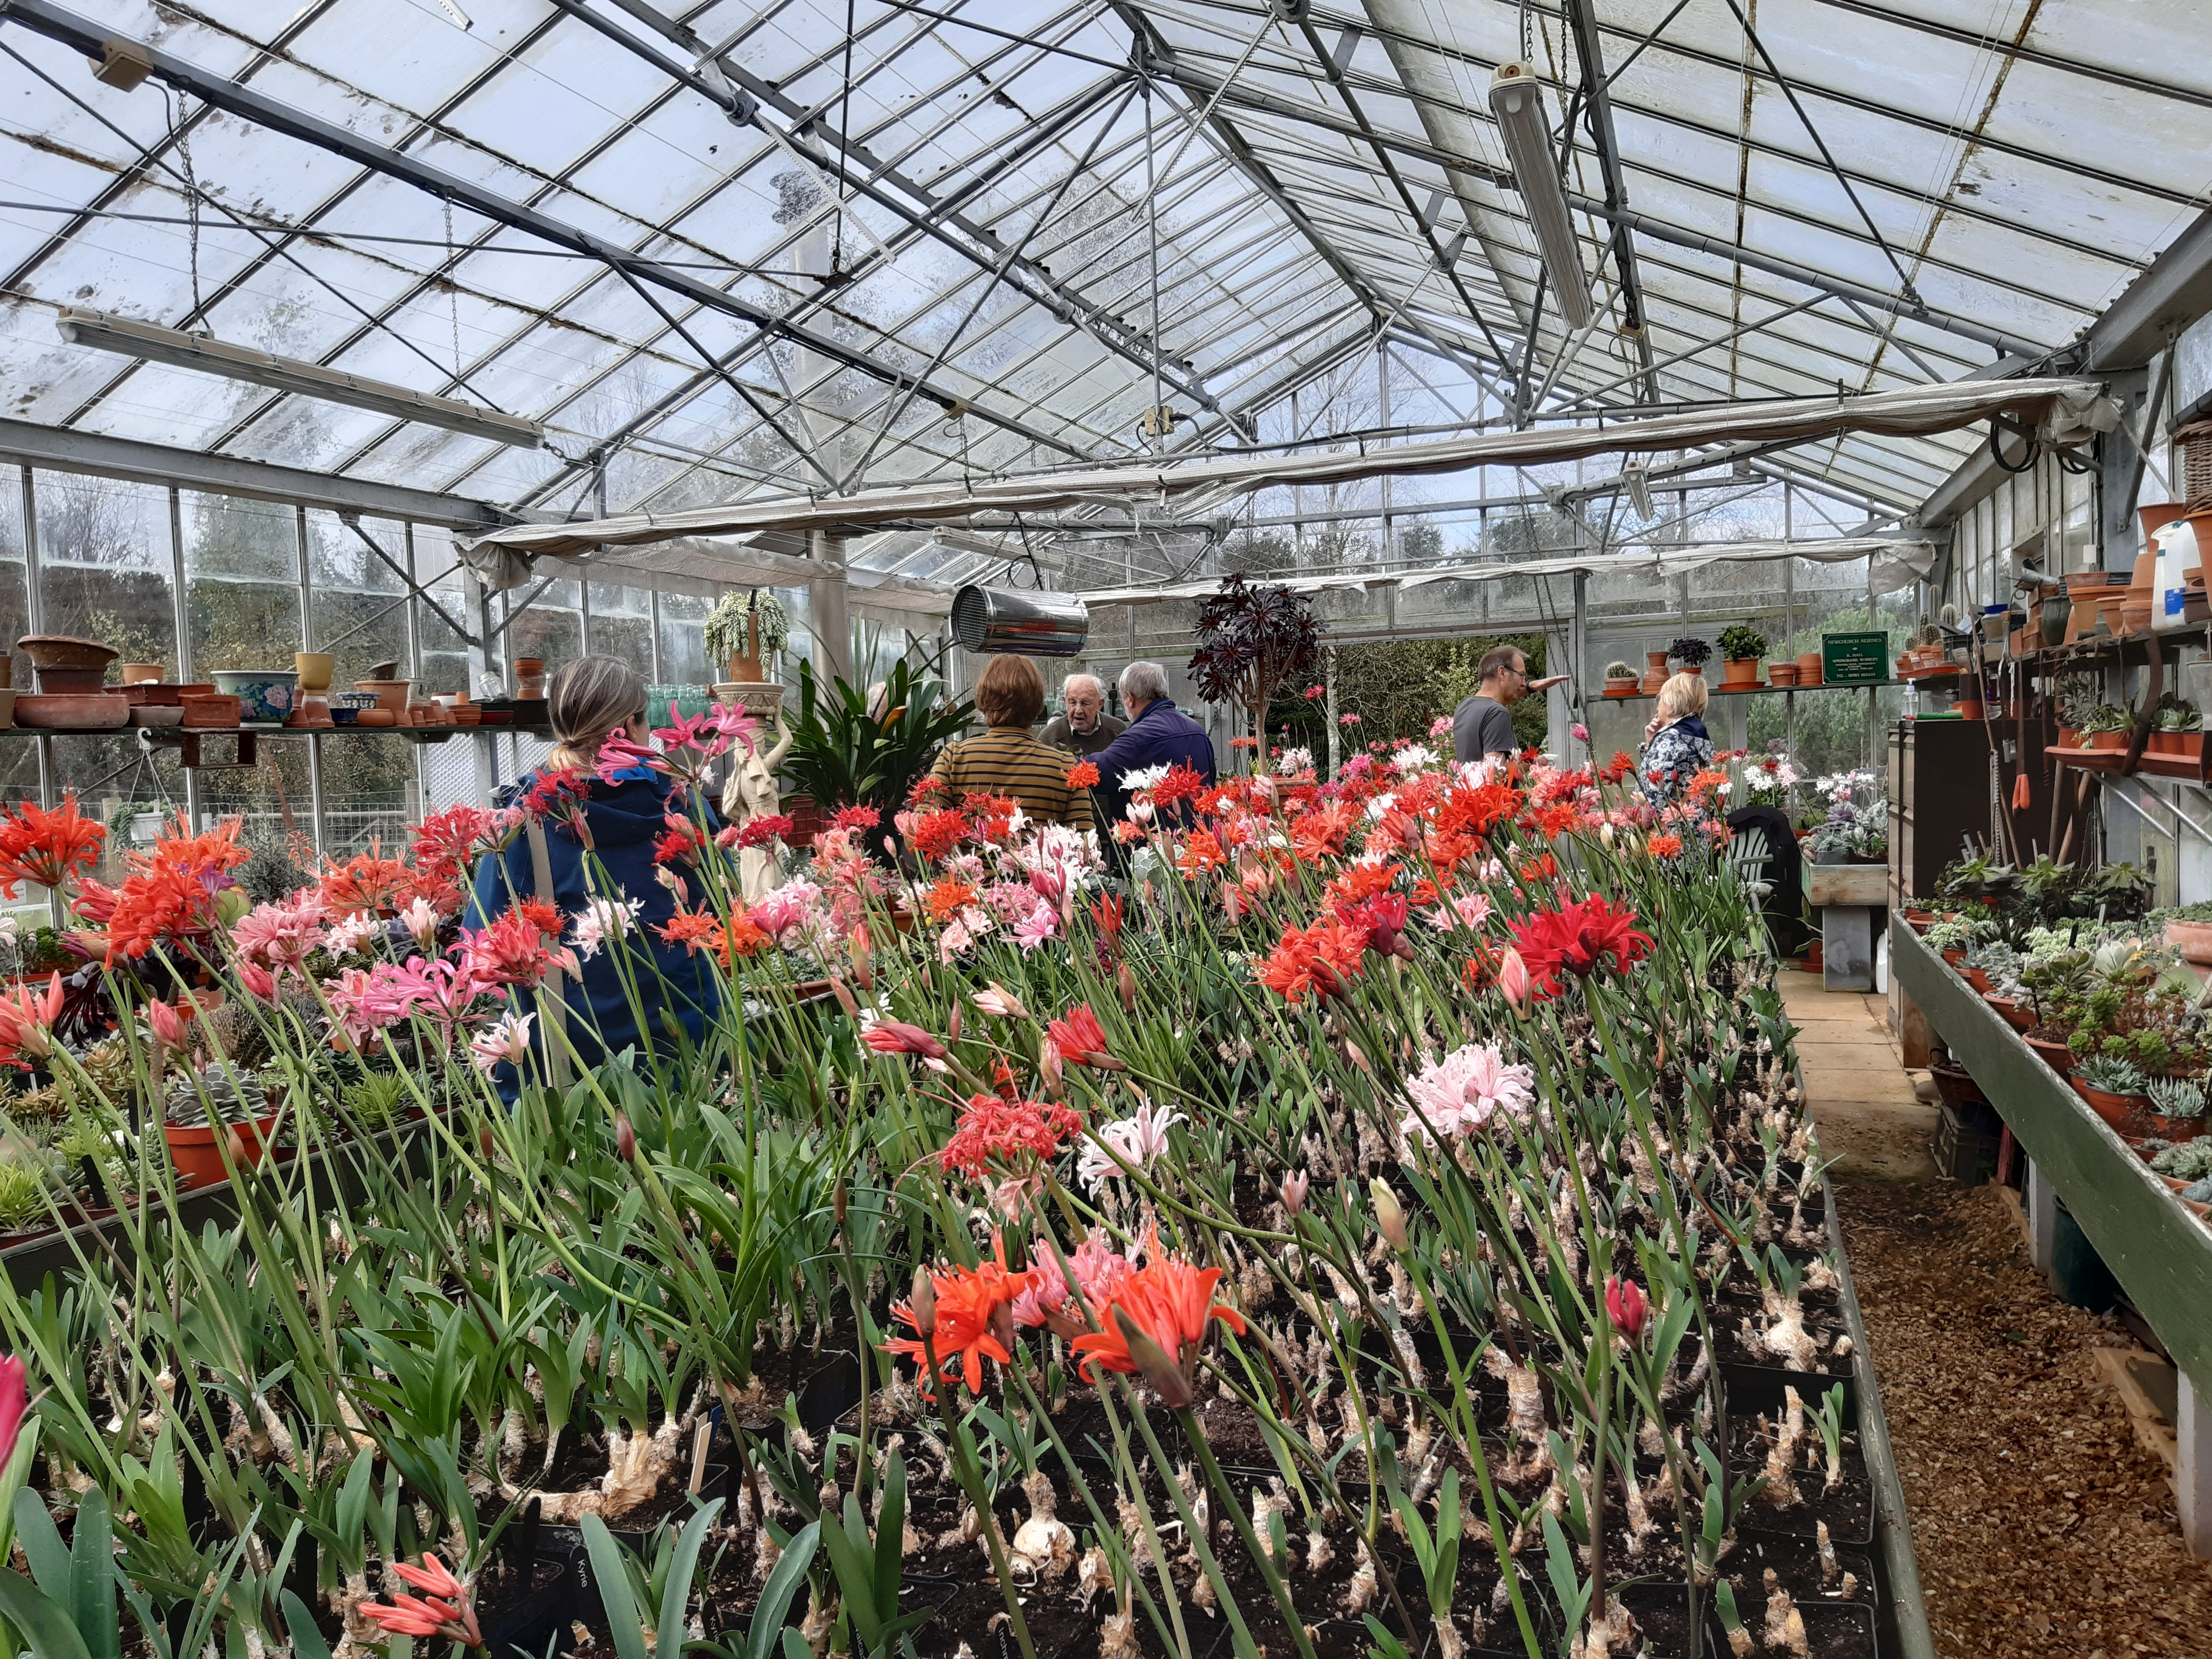 Then into Ken's glasshouse to view his display of Nerine Sarniensis.